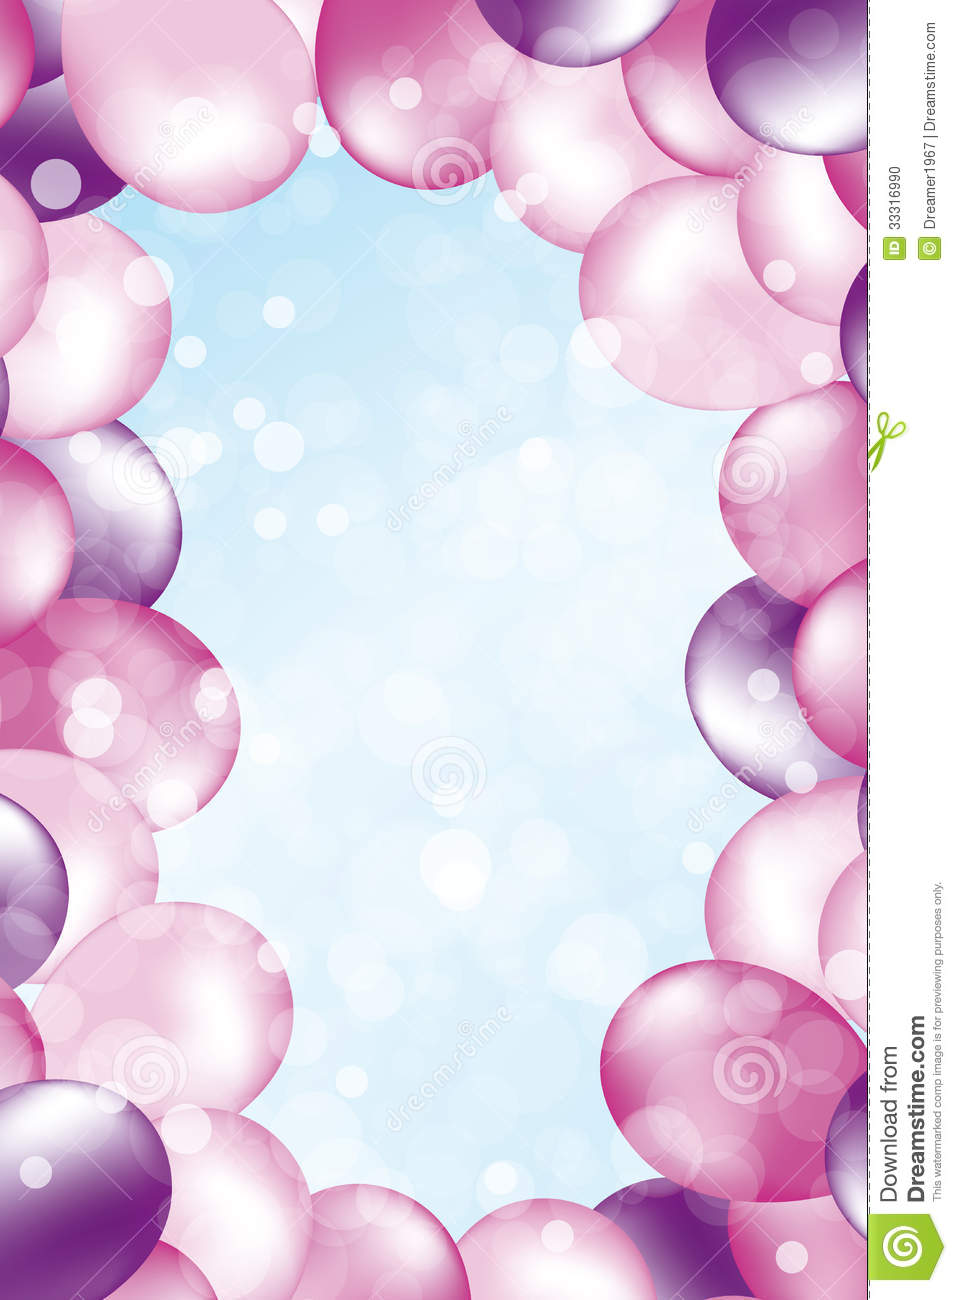 Birthday Balloons Border Landscape Birthday card with copy space